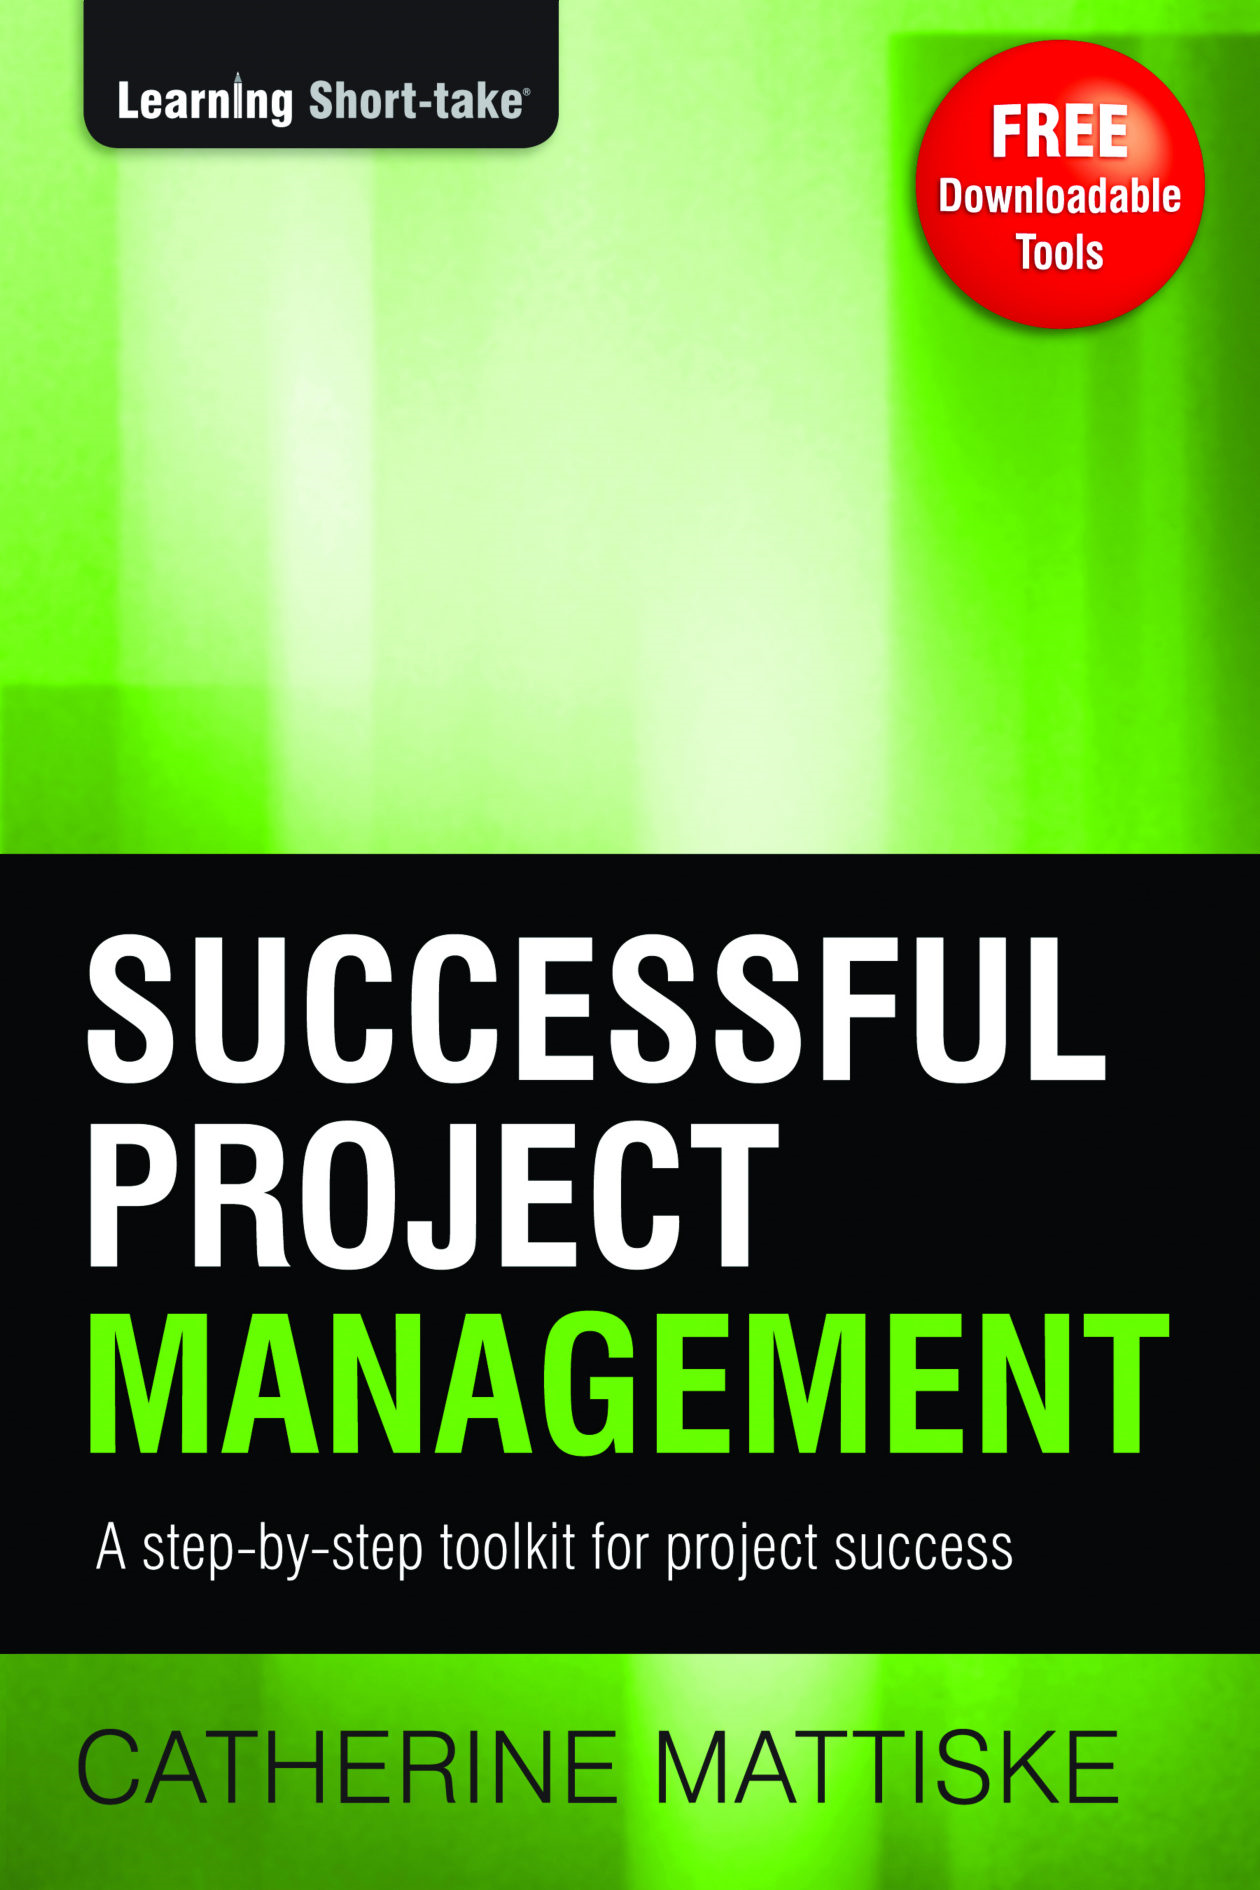 Successful Project Management: Skills and Tools for Inspired